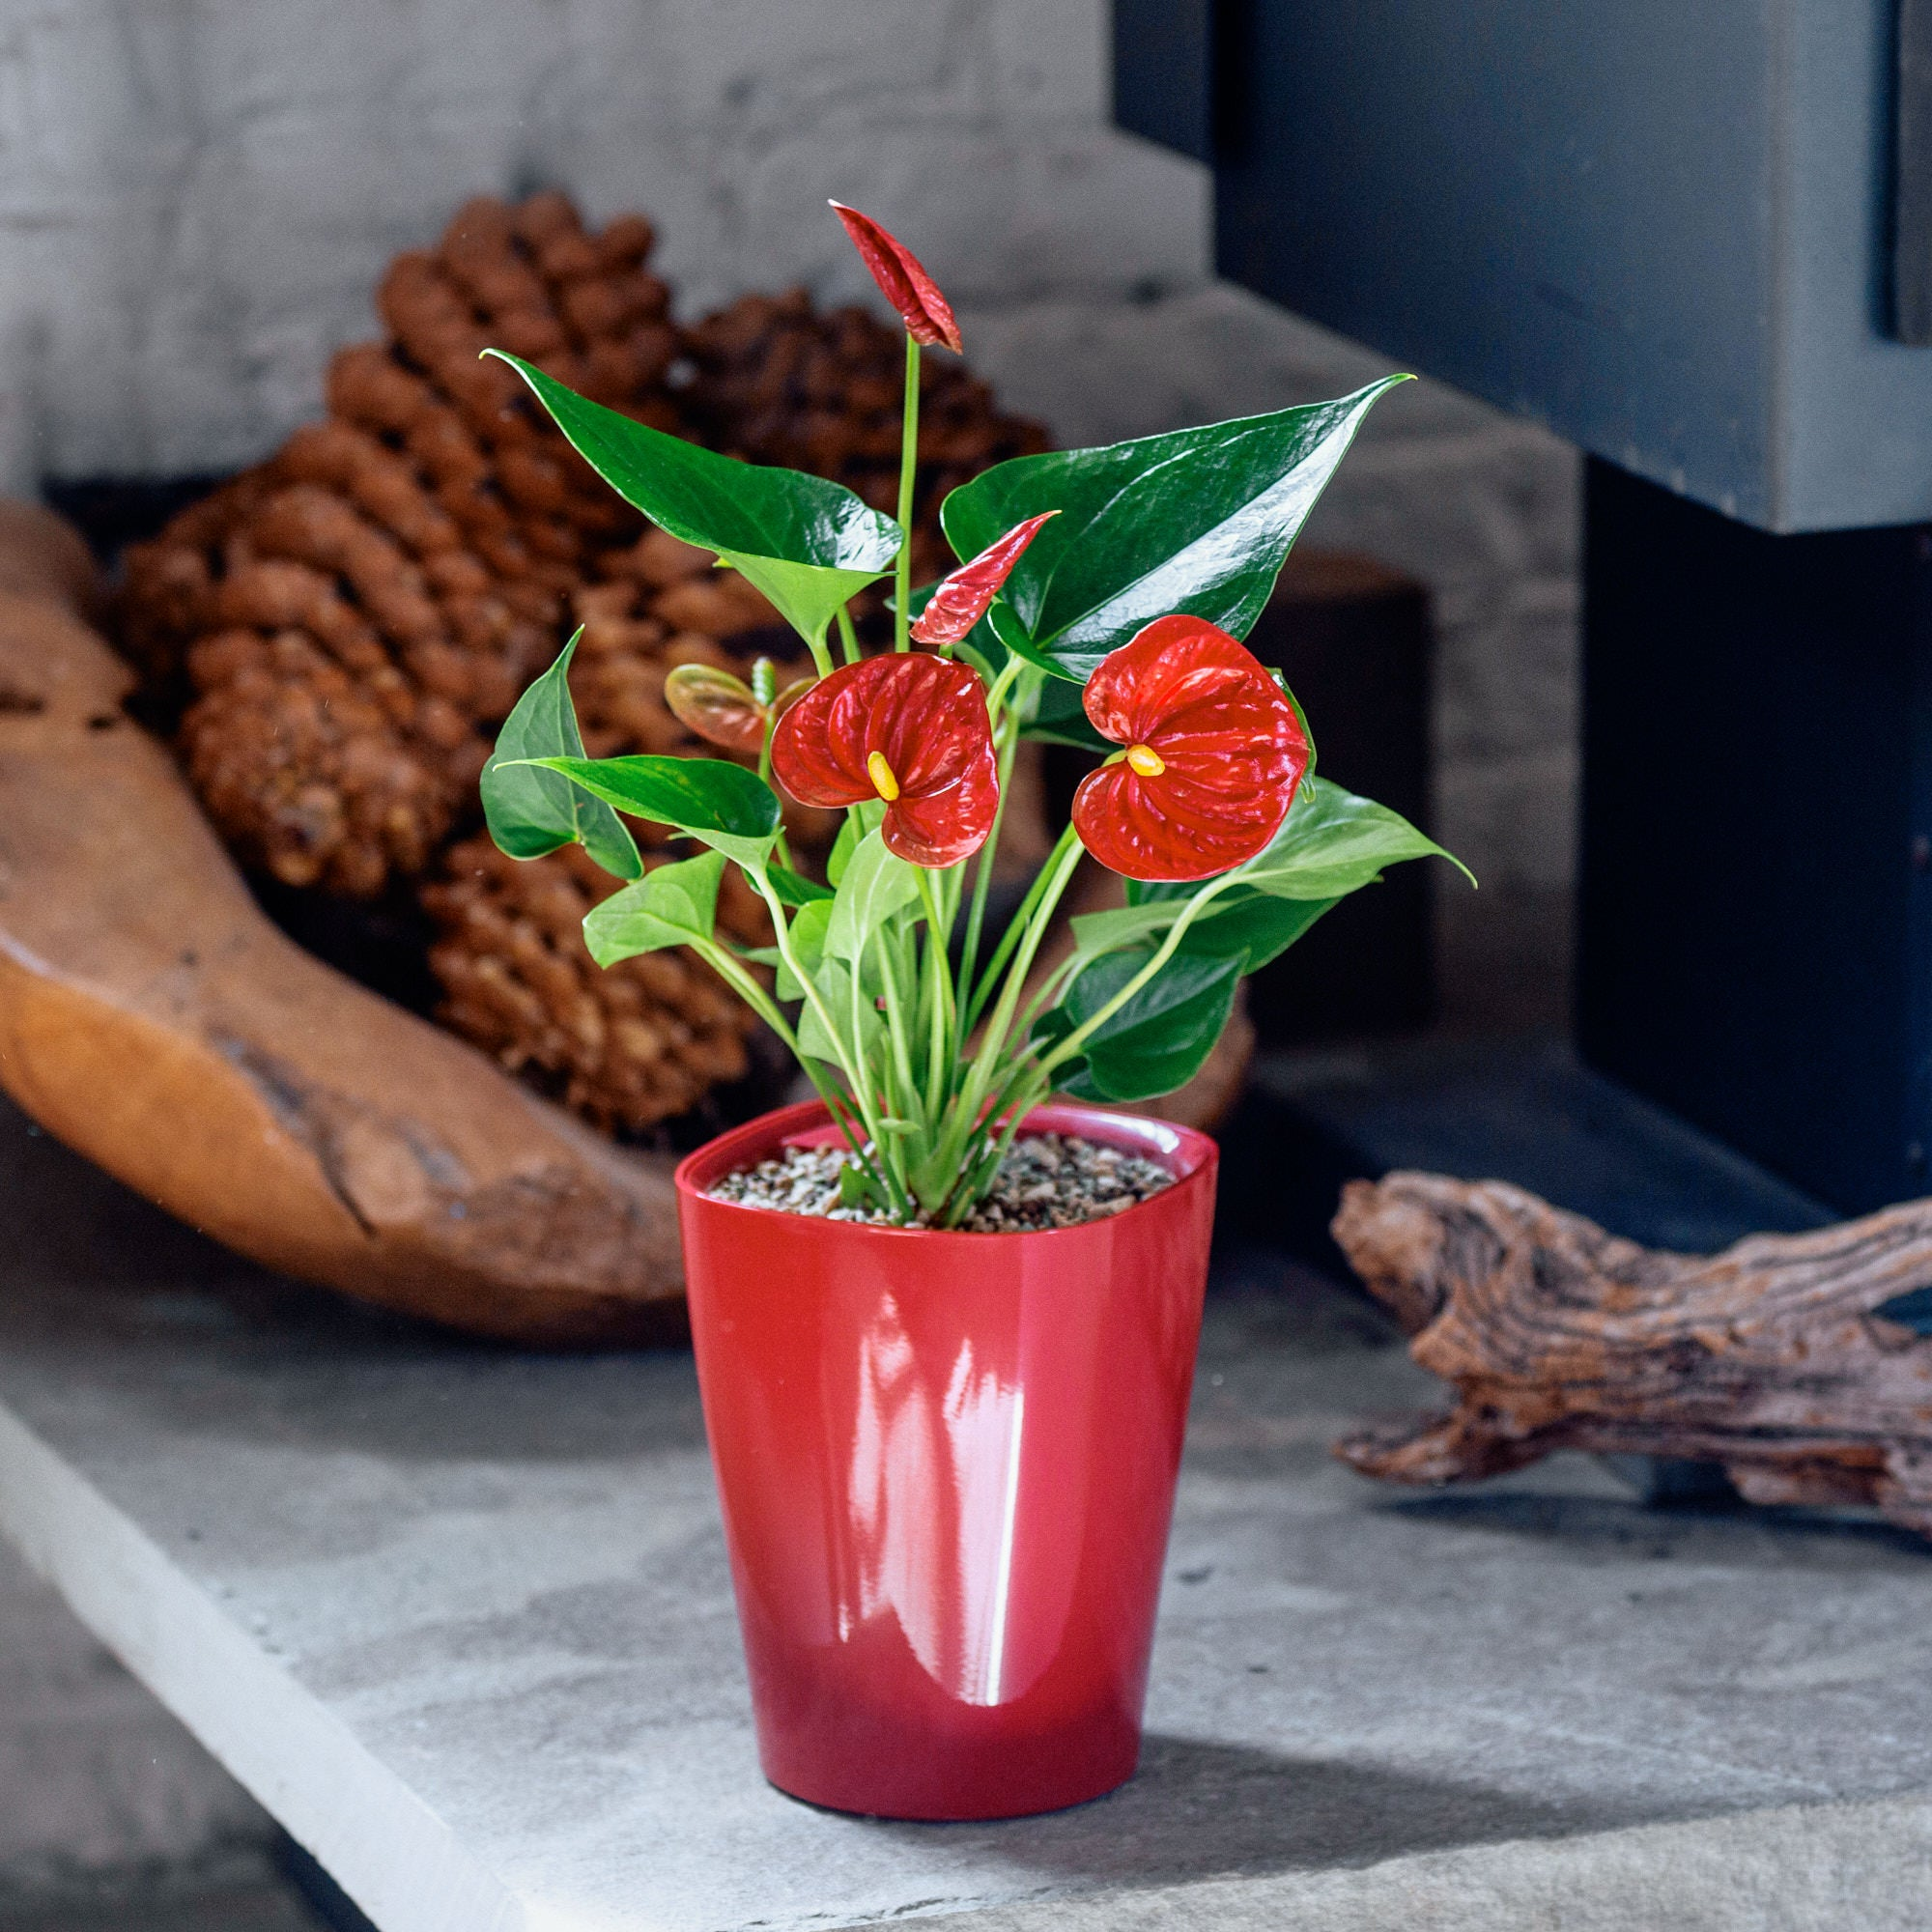 Anthurium potted in Lechuza Deltini red planter - My City Plants